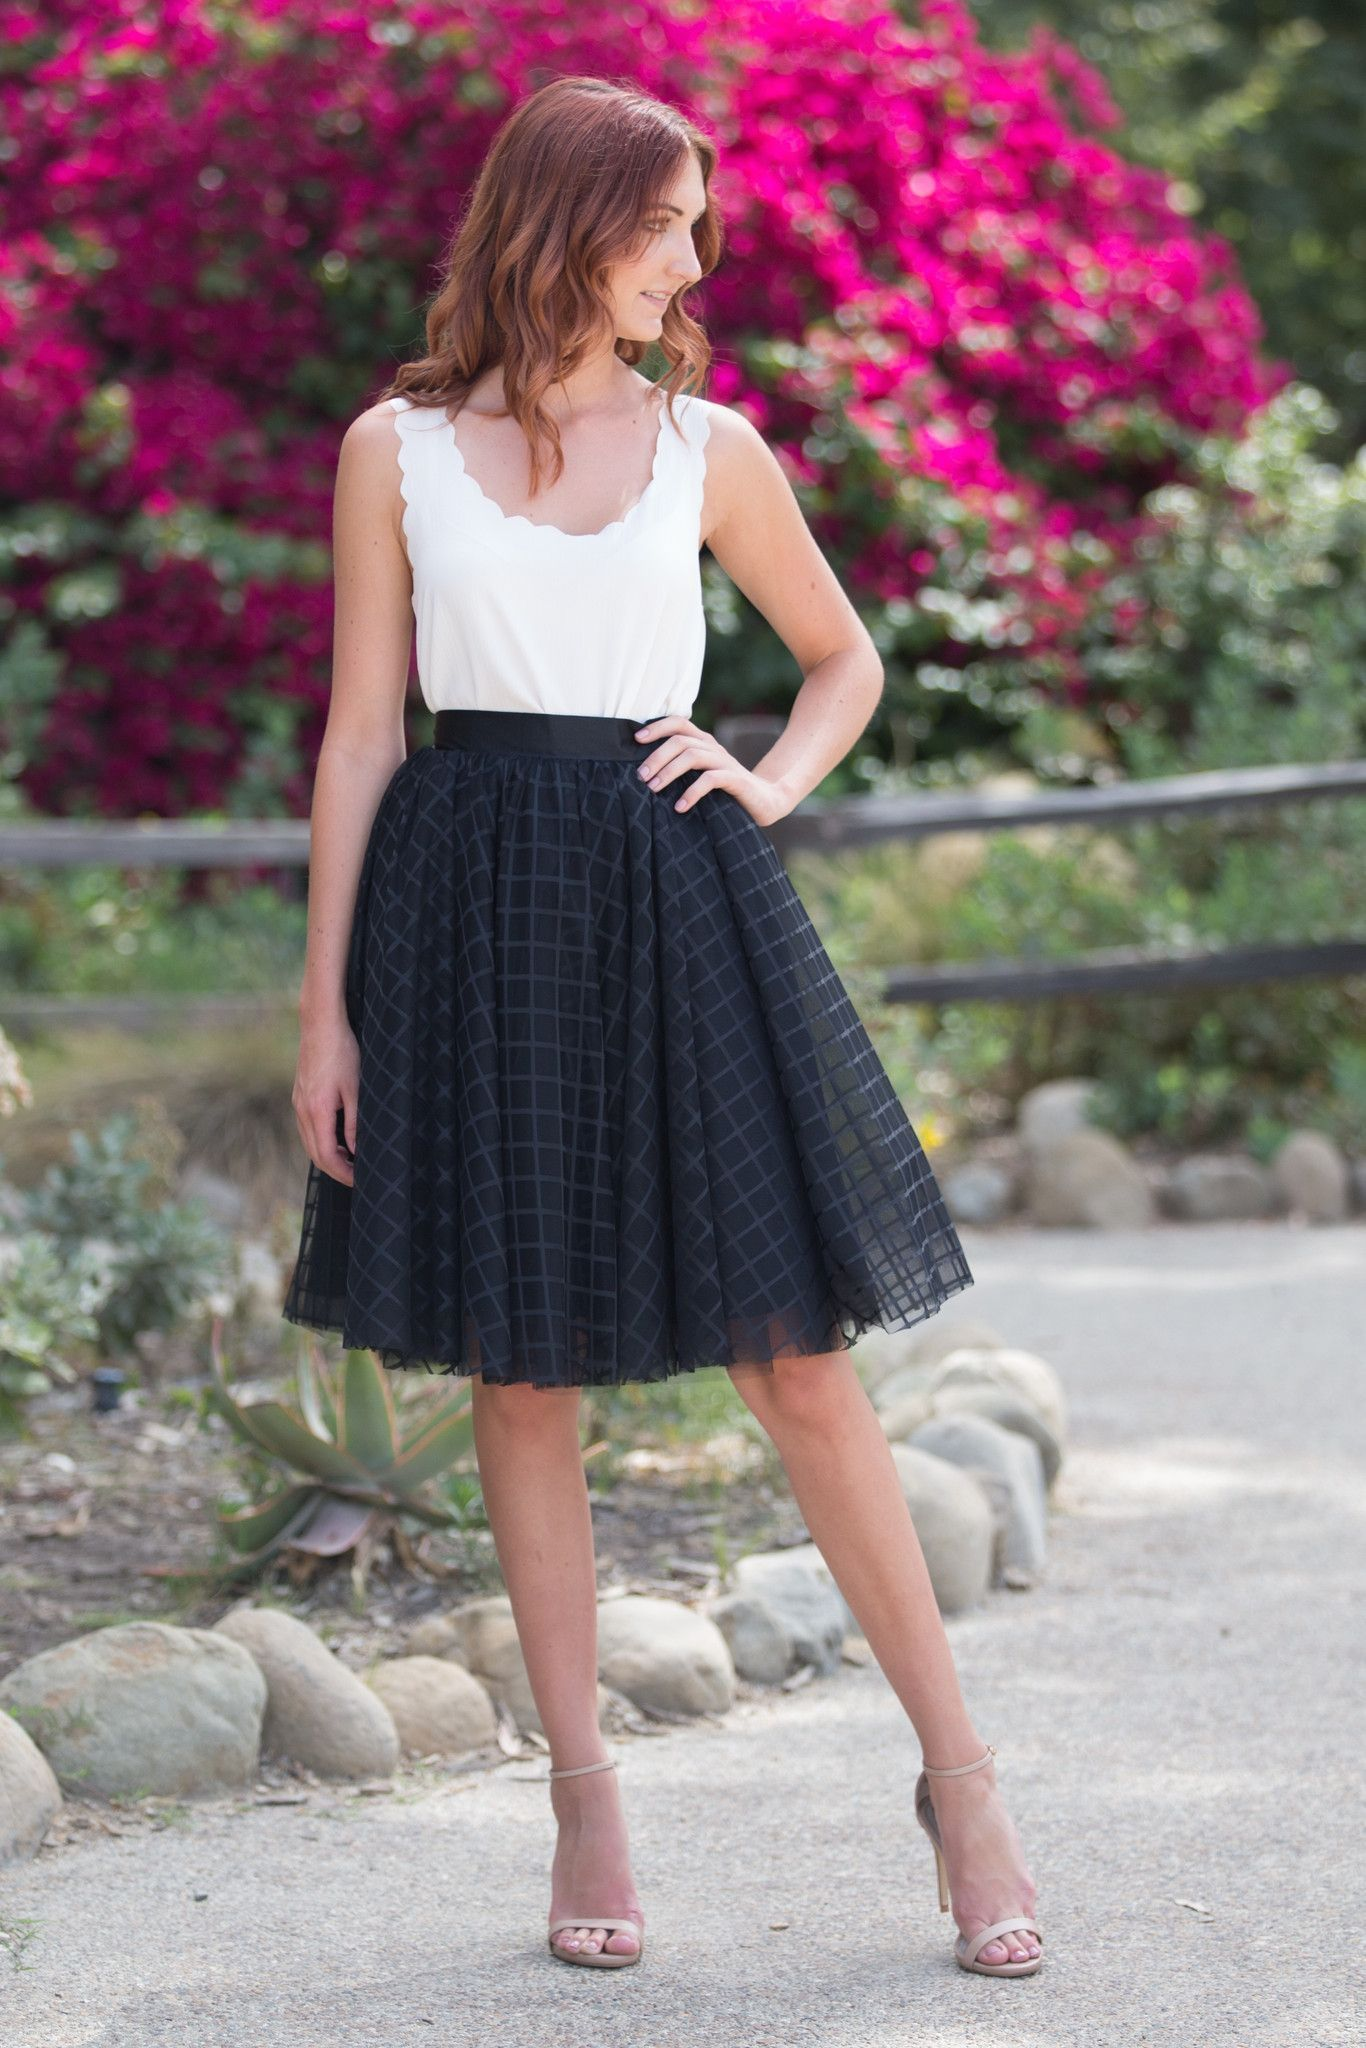 a18914bdd Cairo Lace Tulle Skirt - Black | Skylar Belle Products